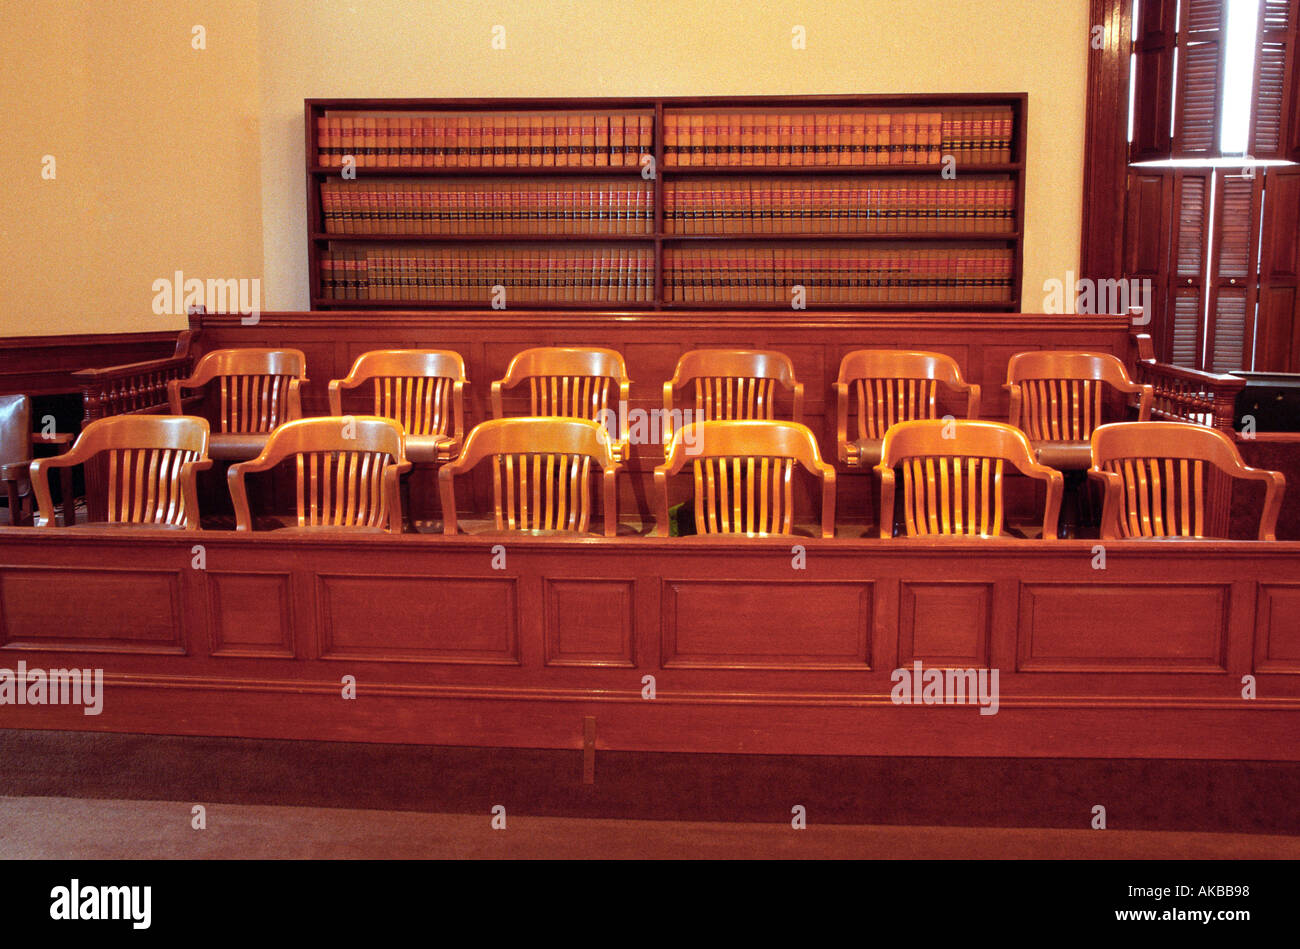 Courtroom jury chairs - Stock Image